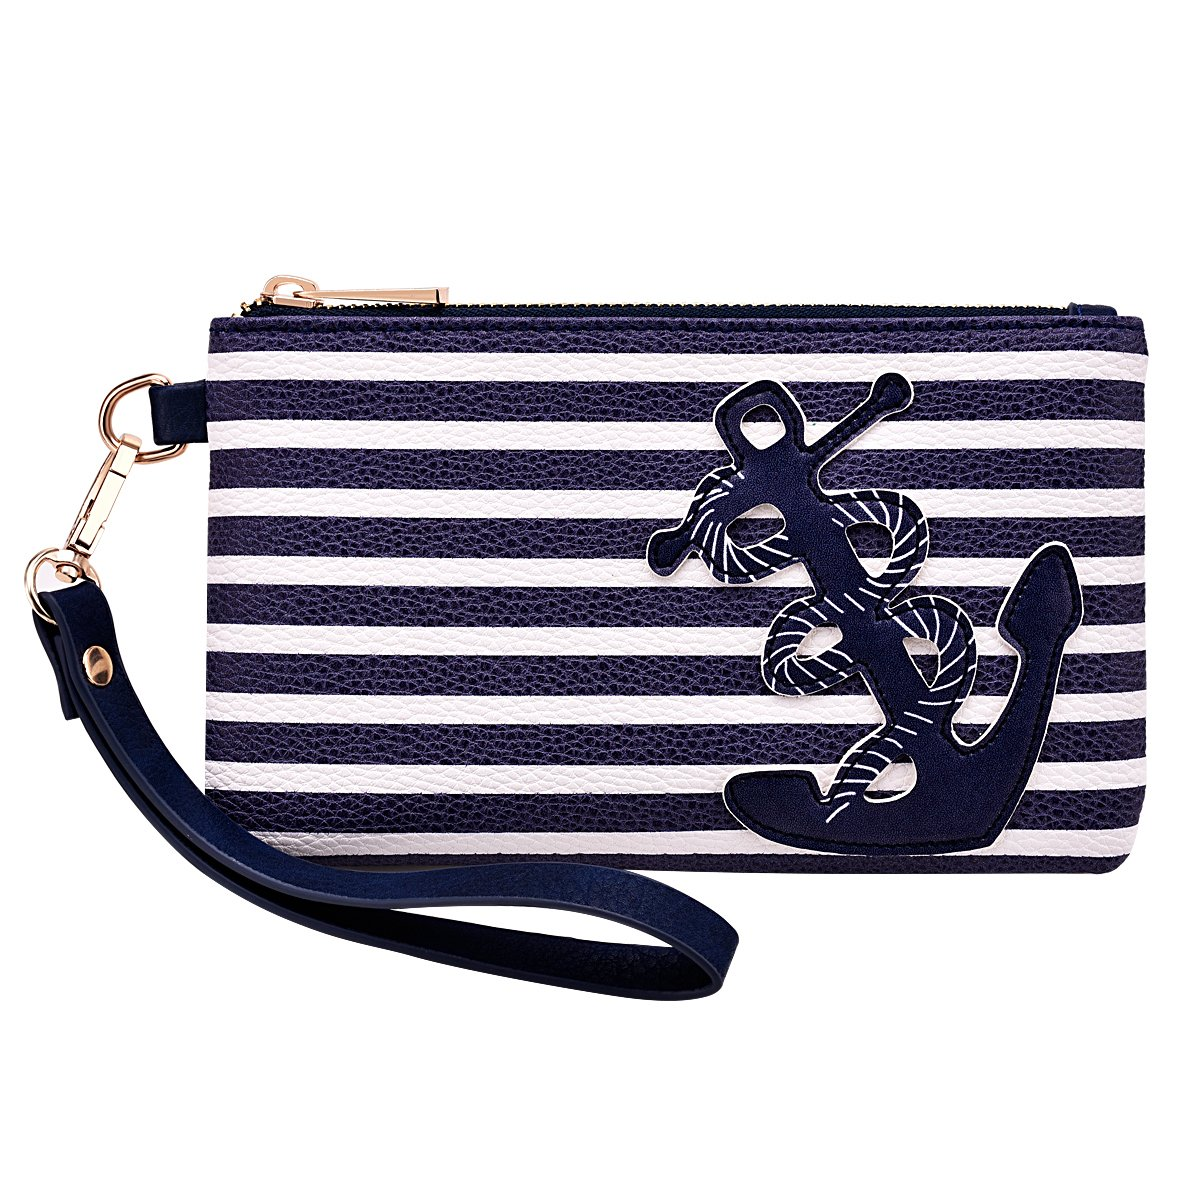 """PU Leather Anchor Purse 8.5""""x5.0"""" Wristlet Bag Zip Coin Pouch for Smart Phones Keys"""